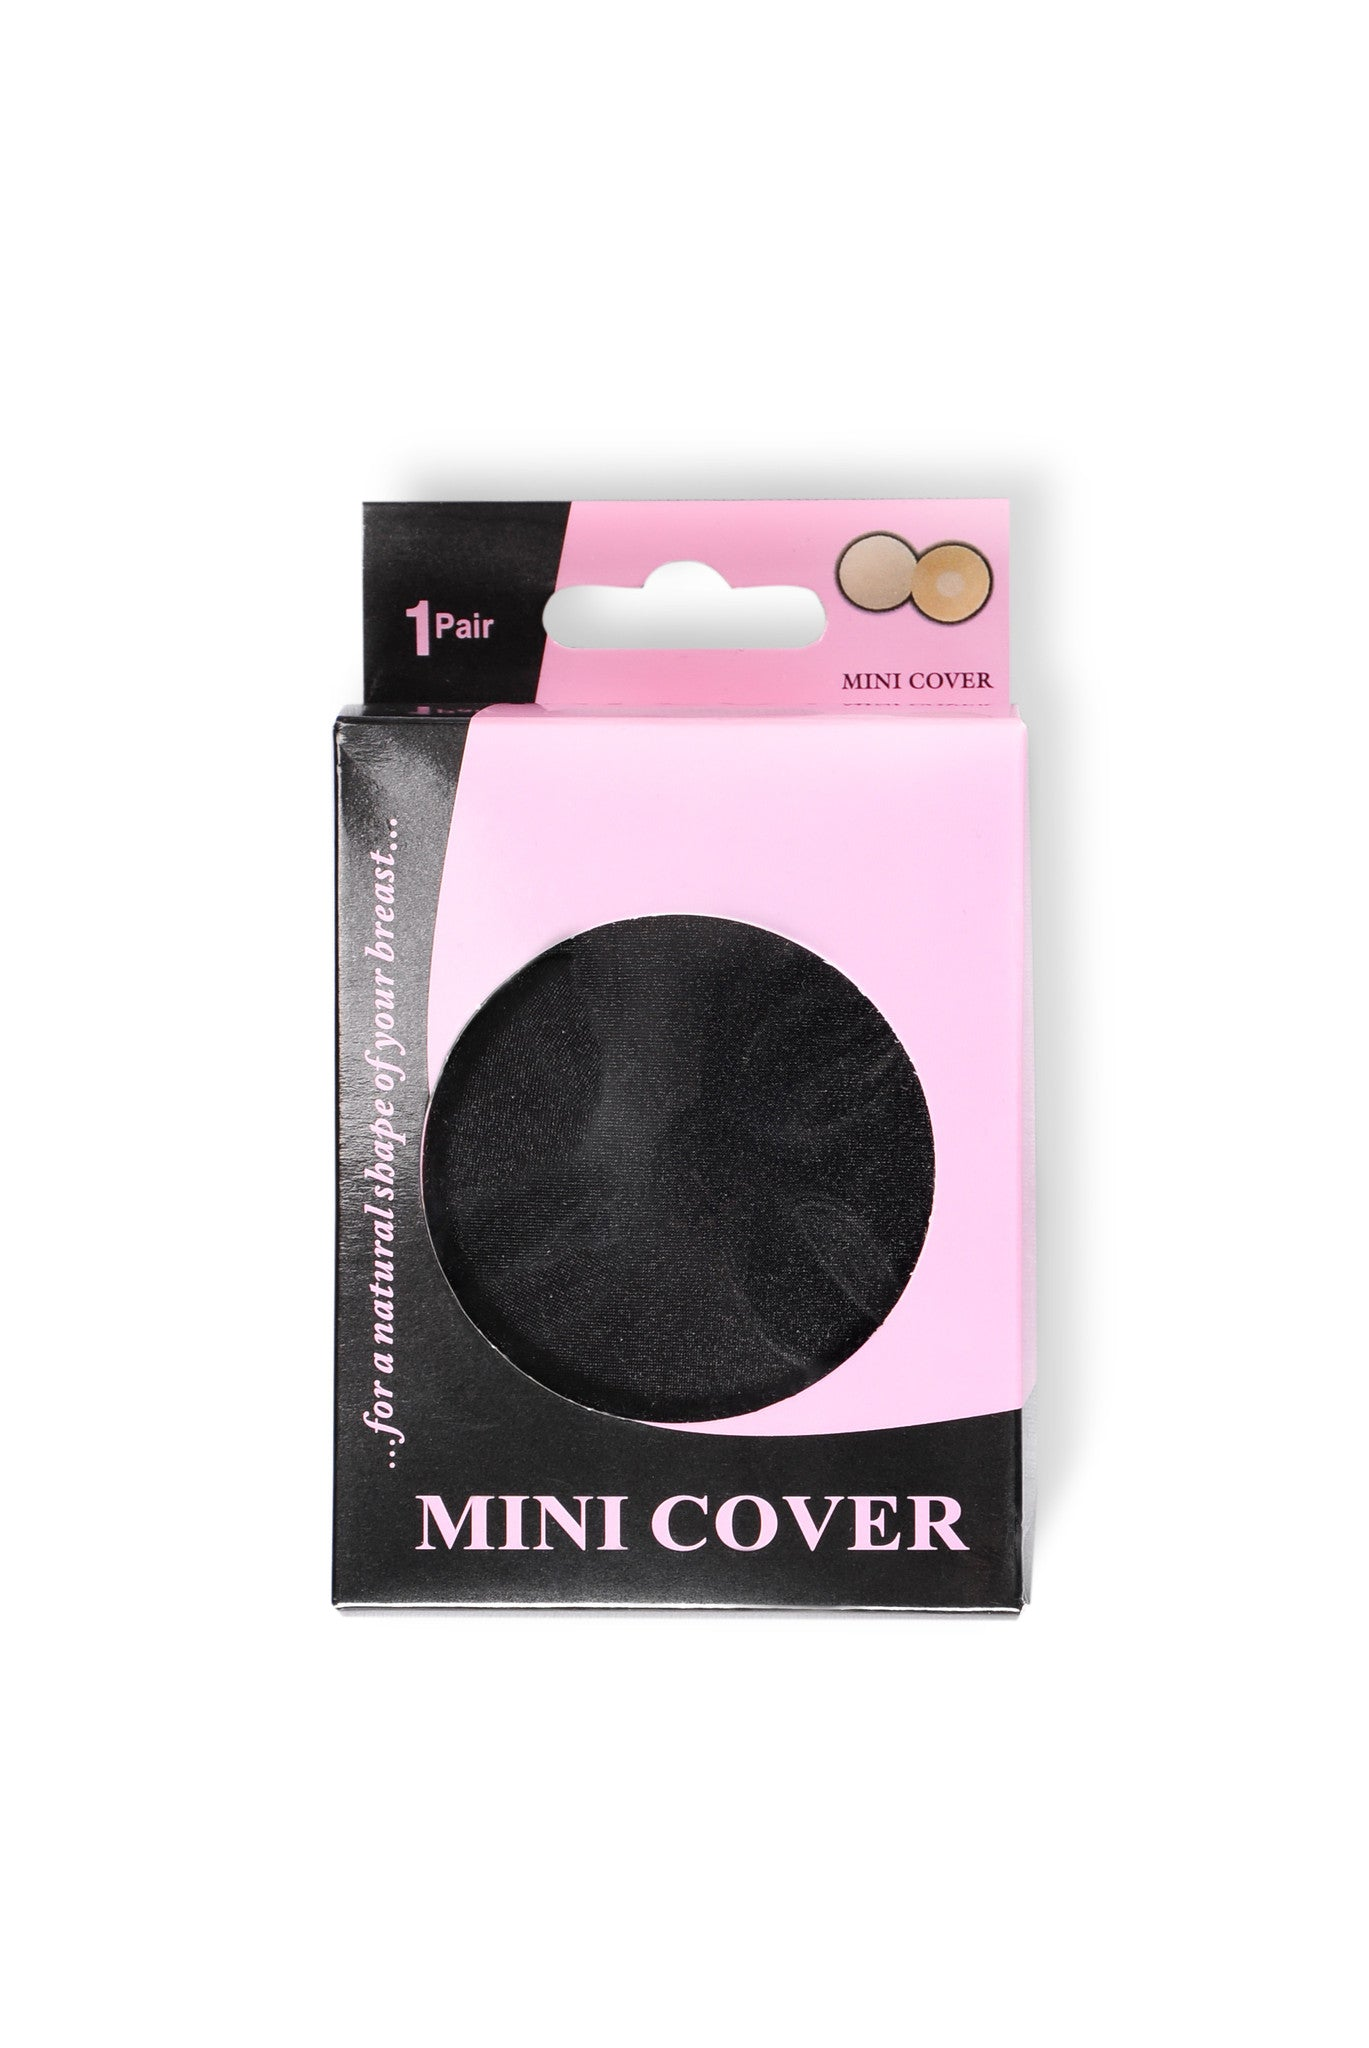 Image result for mini cover breast cover